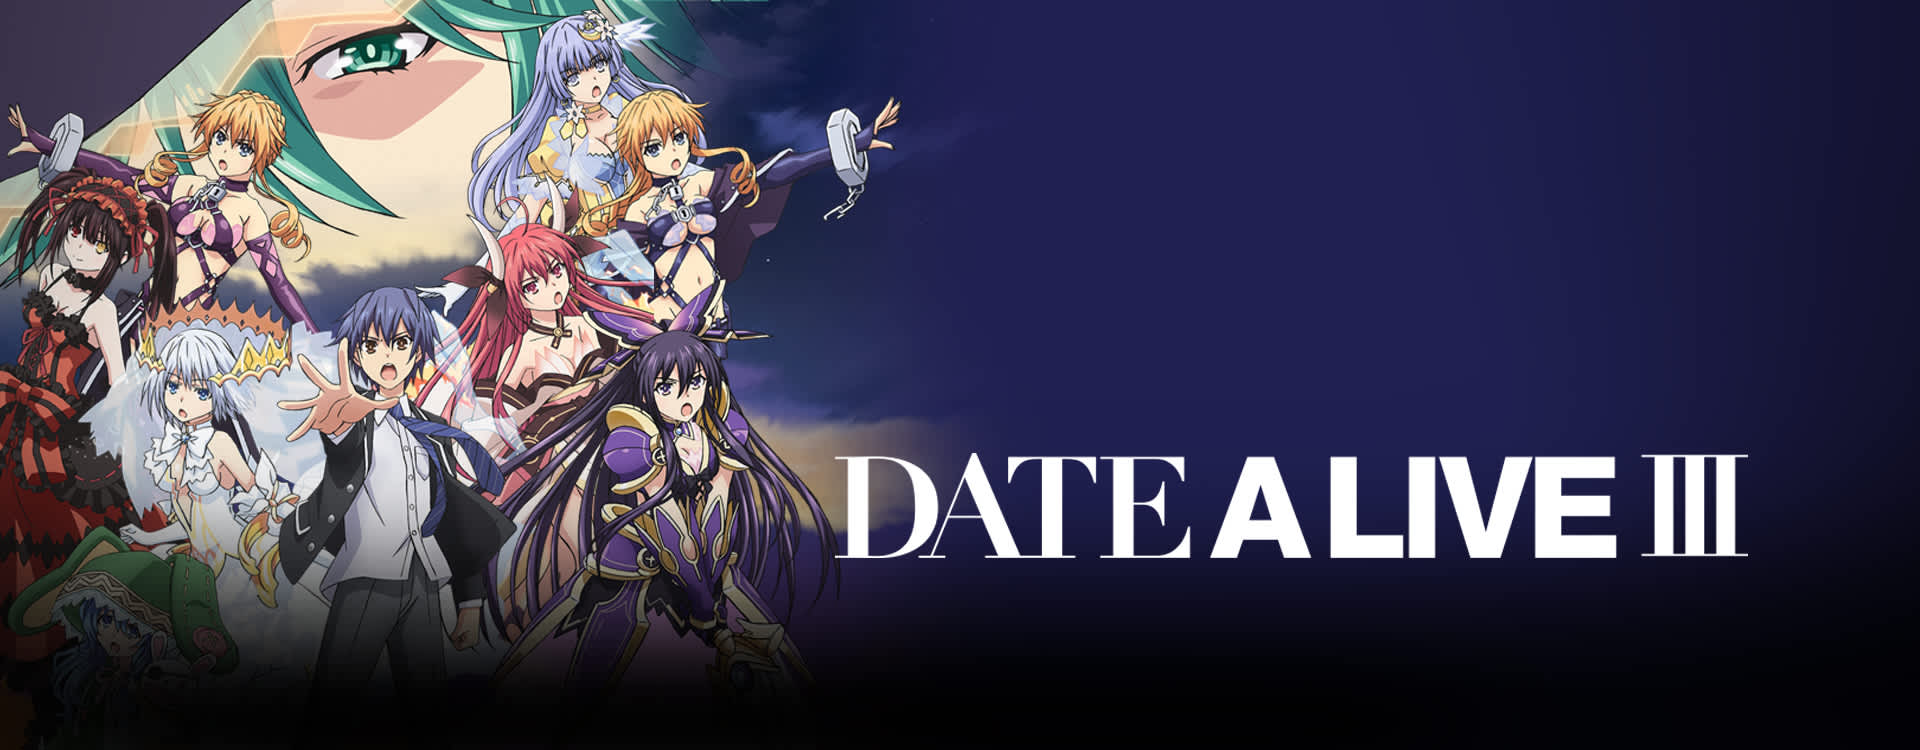 Watch Date A Live Episodes Sub & Dub | Comedy, Fan Service